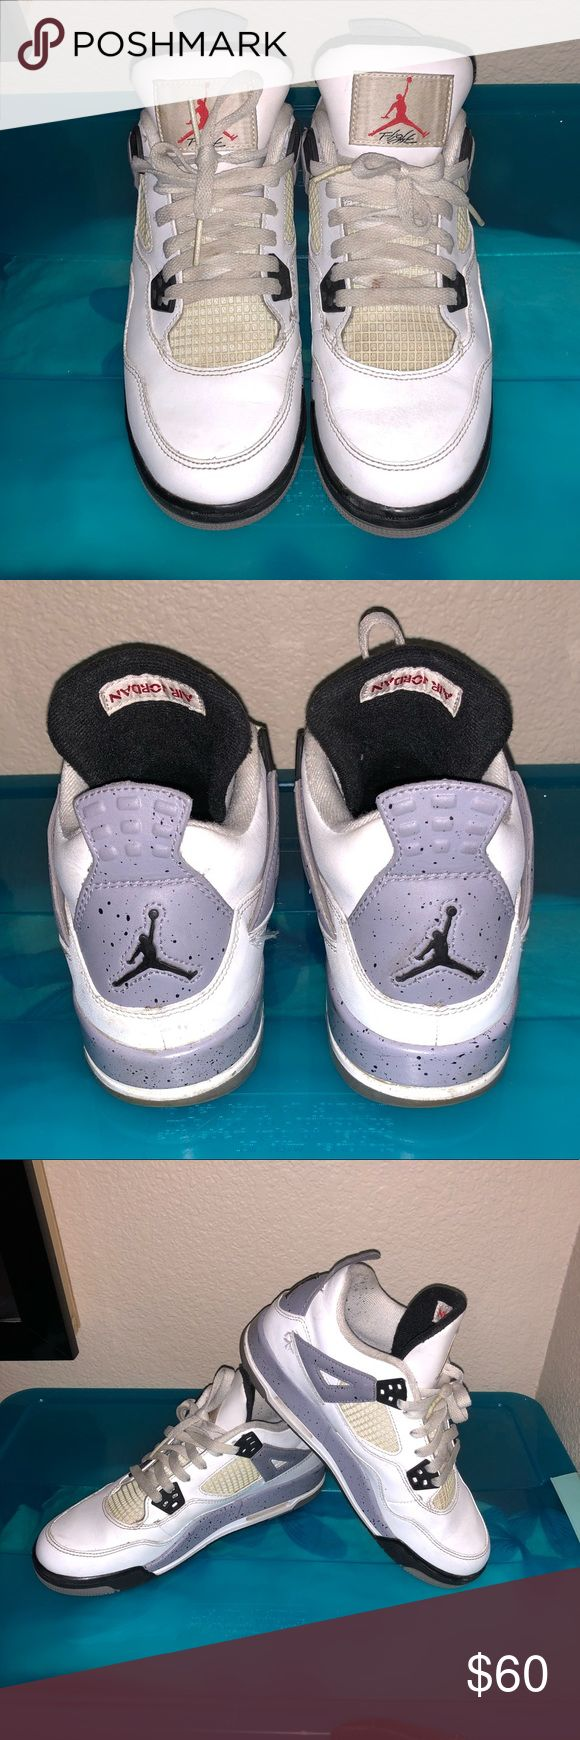 "Retro Jordan 4s Size 6.5Y Retro Jordan 4s ""Cool Grey"" Size 6.5Y (8W). Used. White leather. Slight yellowing on netting (can be restored with anti-yellowing shoe solution) Air Jordan Shoes Athletic Shoes"